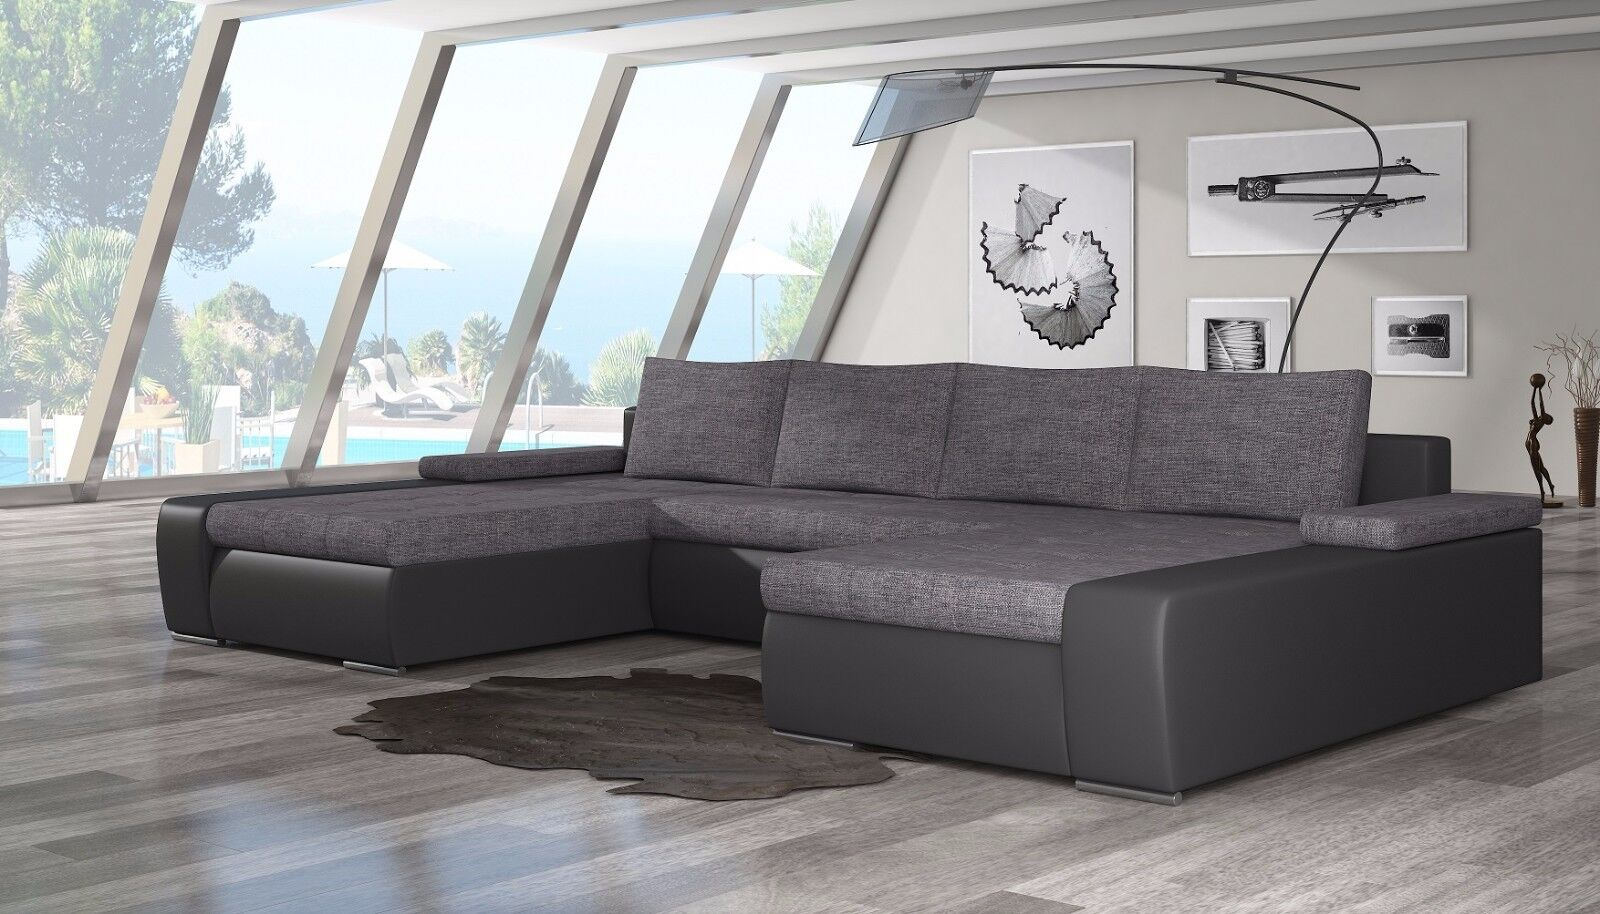 couch in u form couch u form perfect full size of couch u form couches furniture gallery page. Black Bedroom Furniture Sets. Home Design Ideas